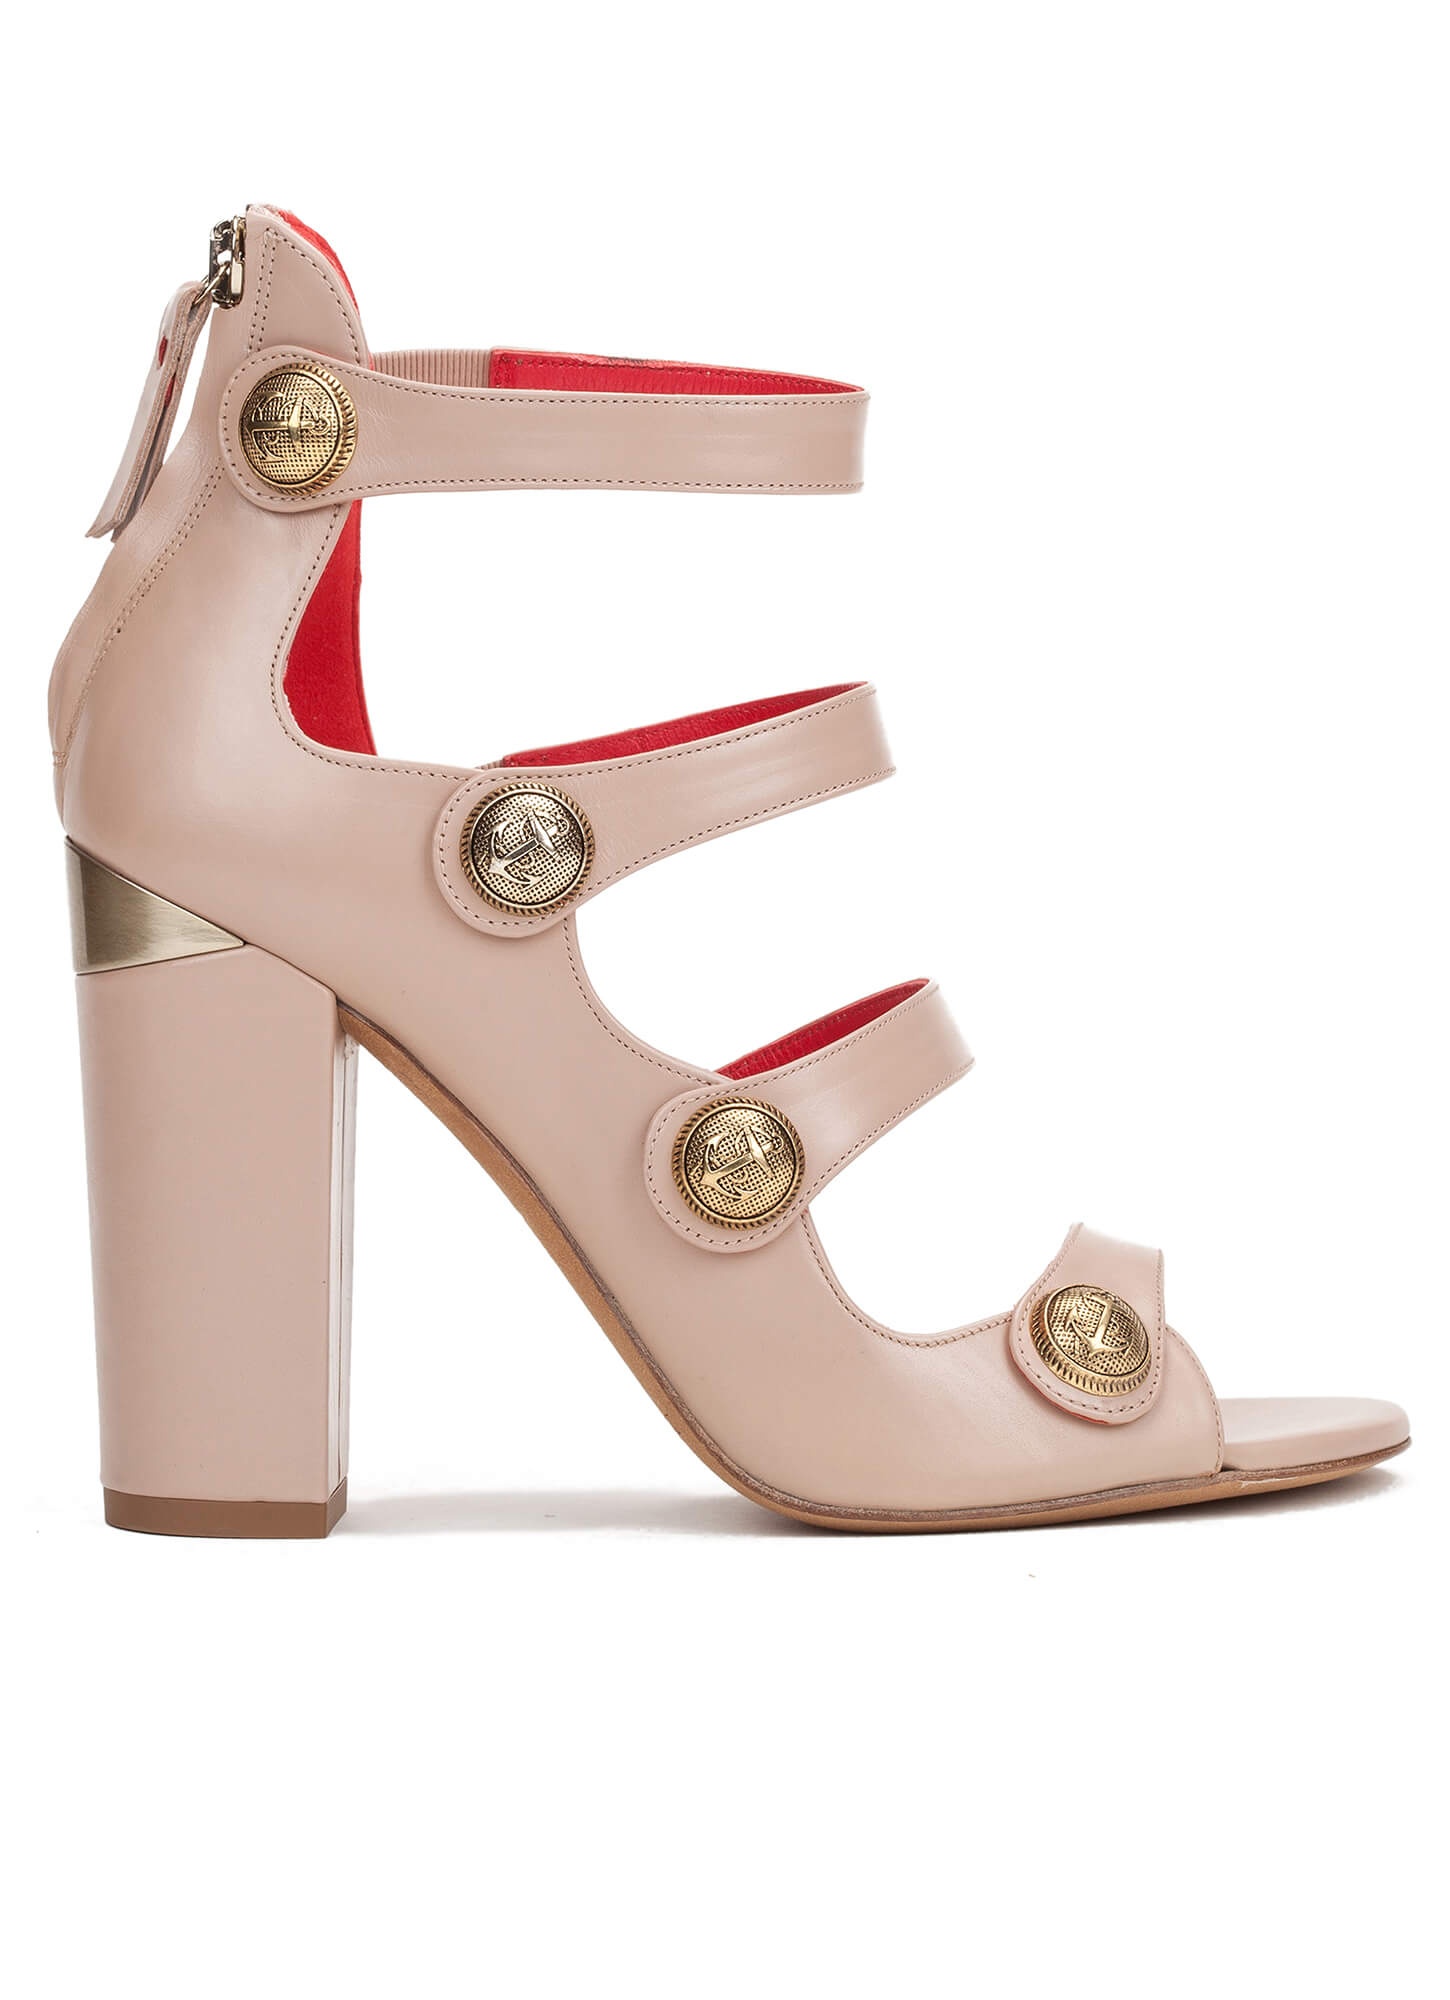 98e08fce169b High block heel sandals in nude leather with metallic buttons High heel  sandals with metal buttons - online shoe store Pura Lopez Kimena Pura López  ...